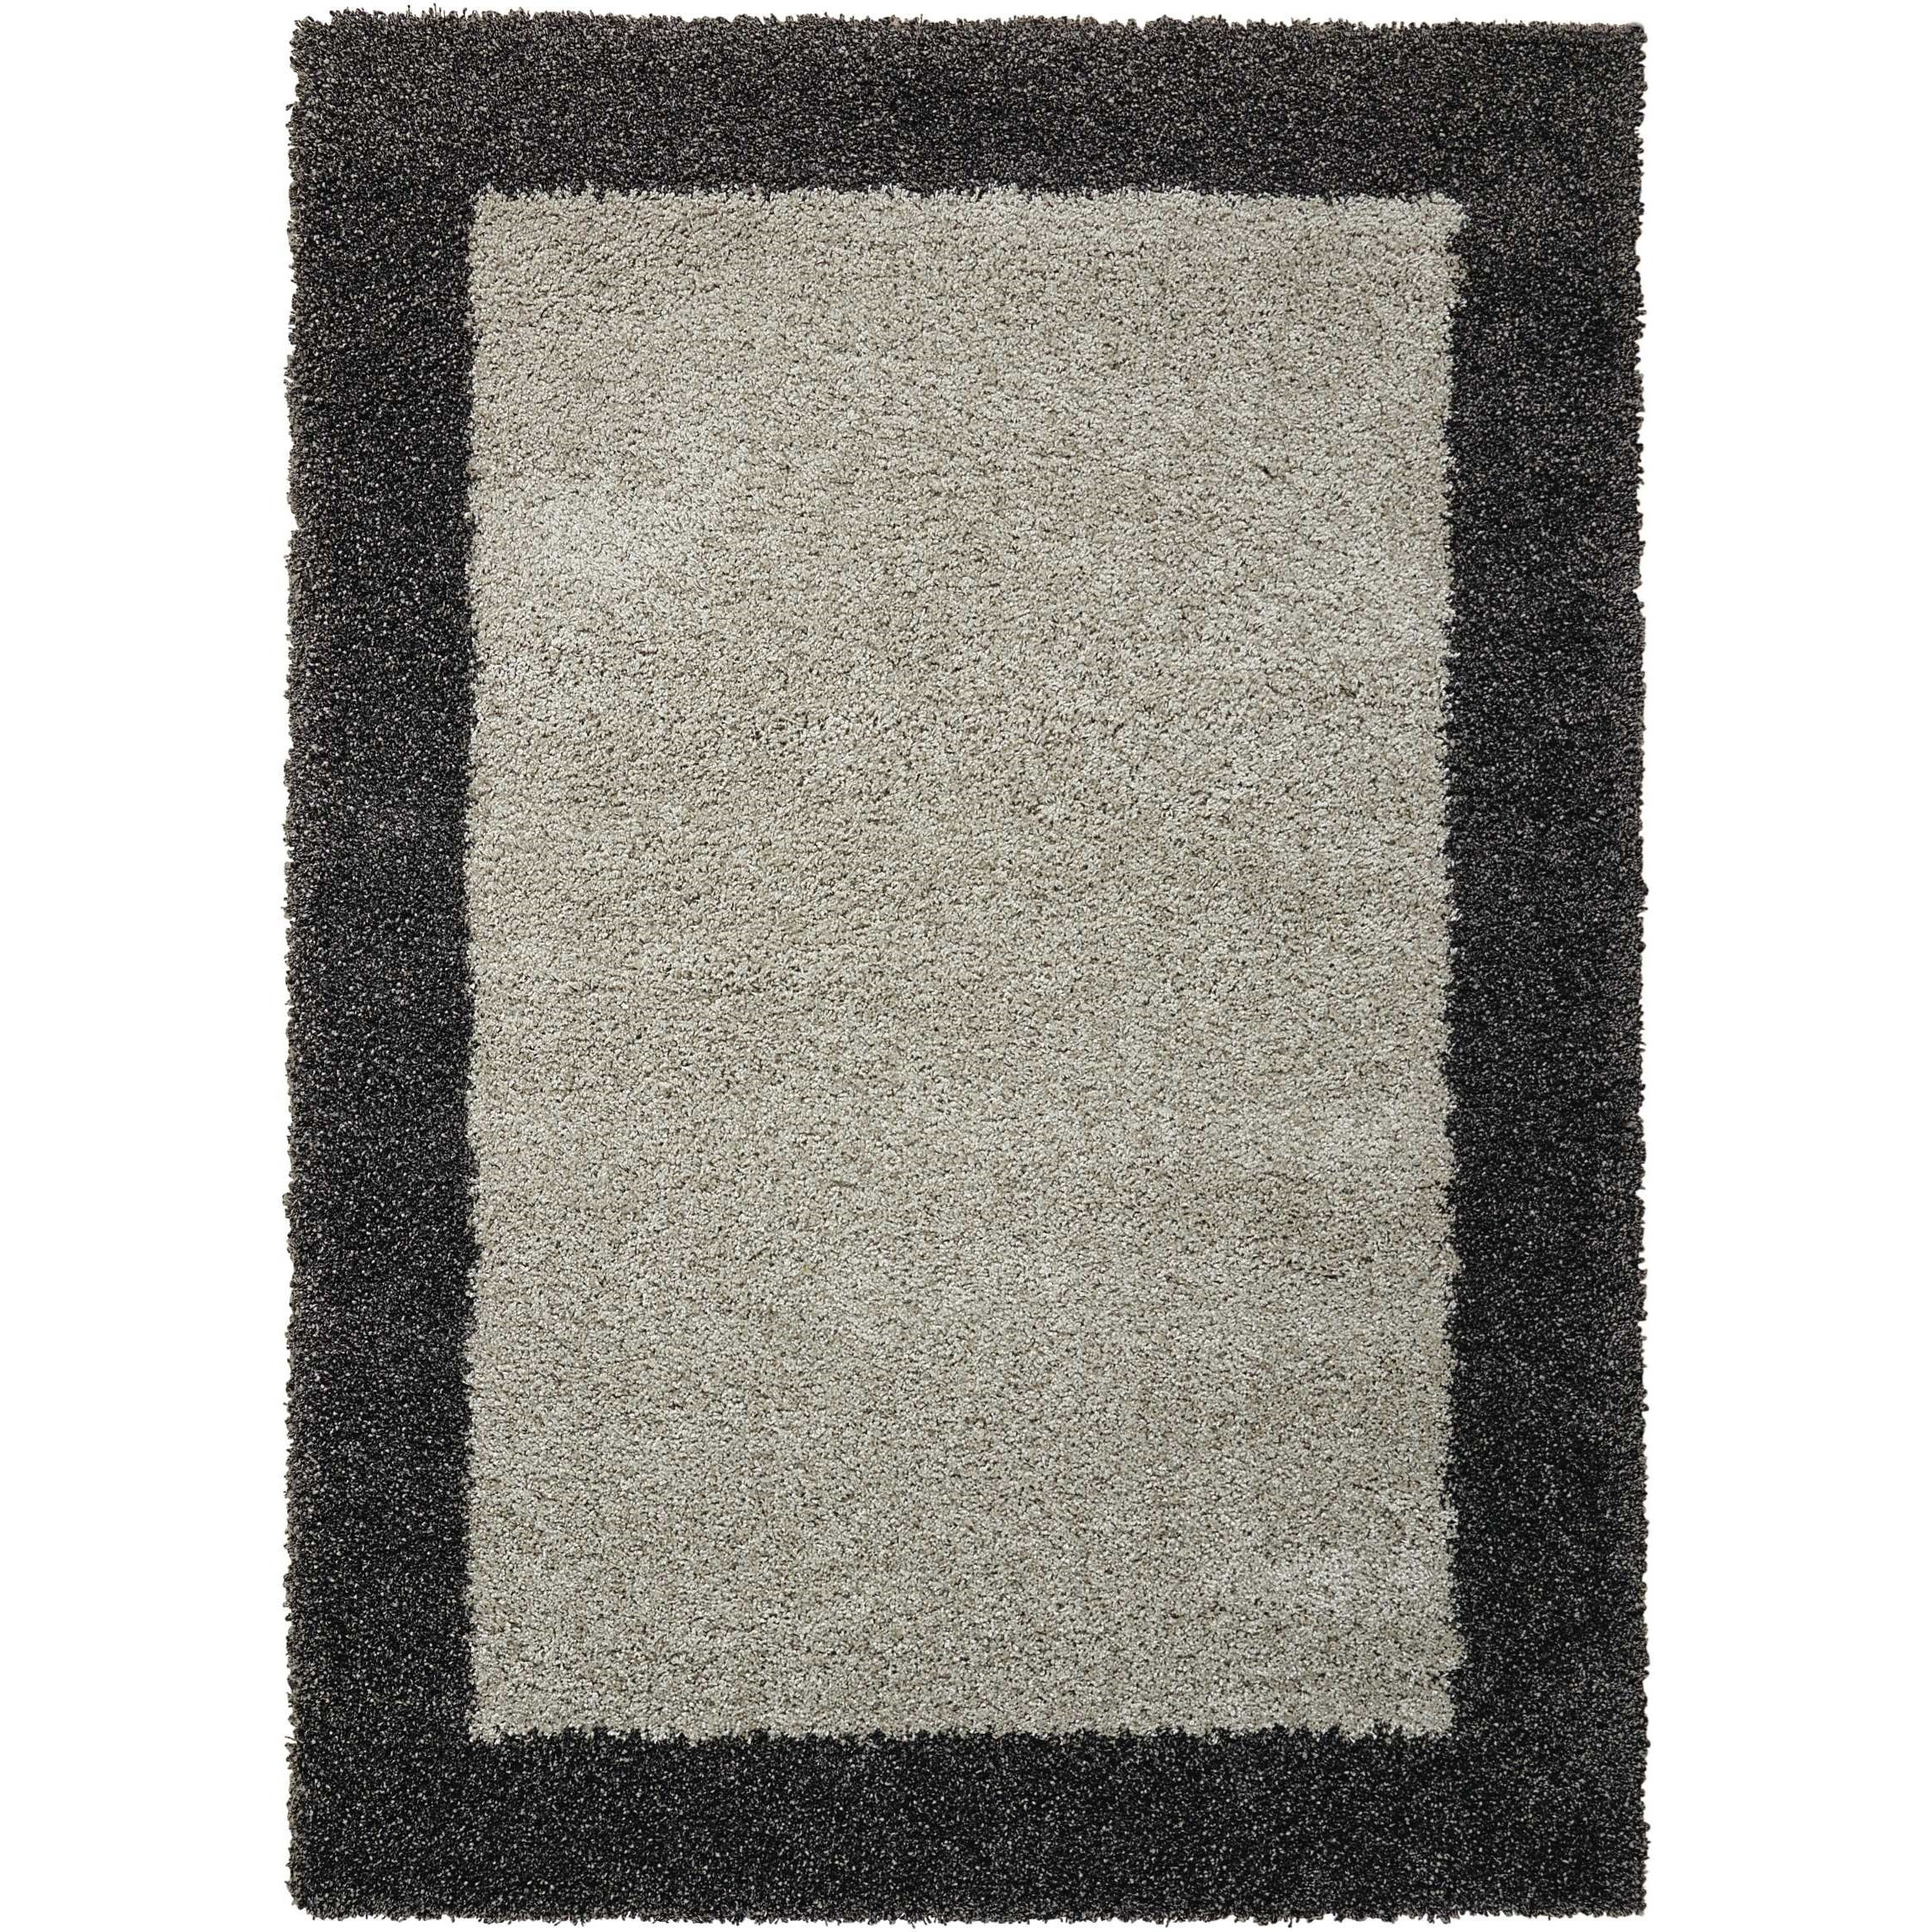 """Amore 7'10"""" x 10'10"""" Silver/Charcoal Rectangle Rug by Nourison at Sprintz Furniture"""